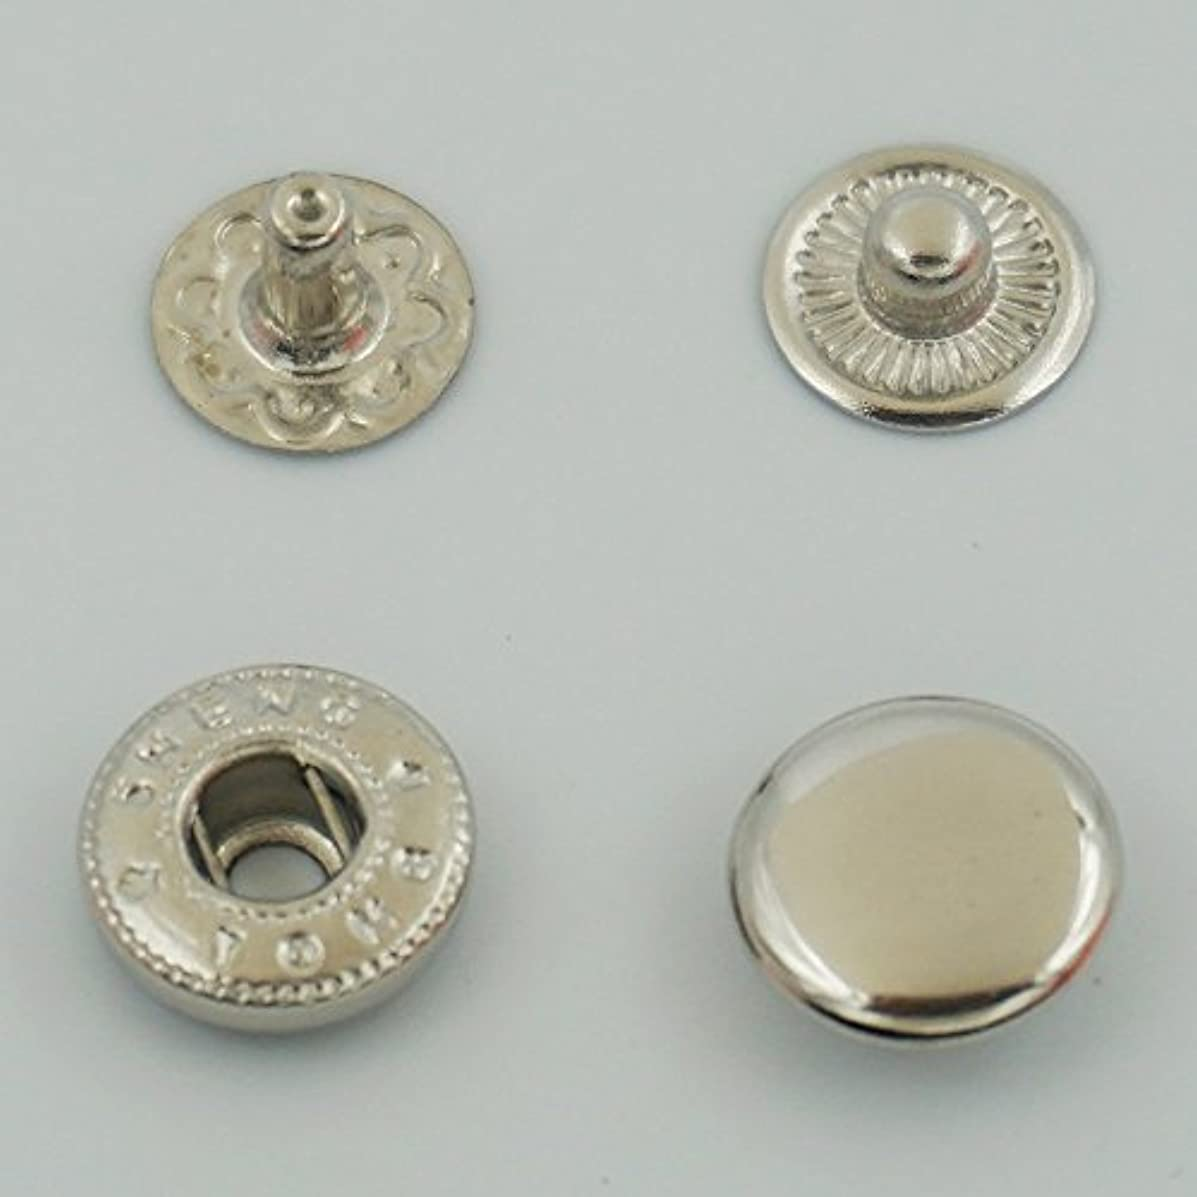 GBSTORE 50 Set Metal Snap Fastener Leather Rapid Rivet Button Sewing 10mm Silvery